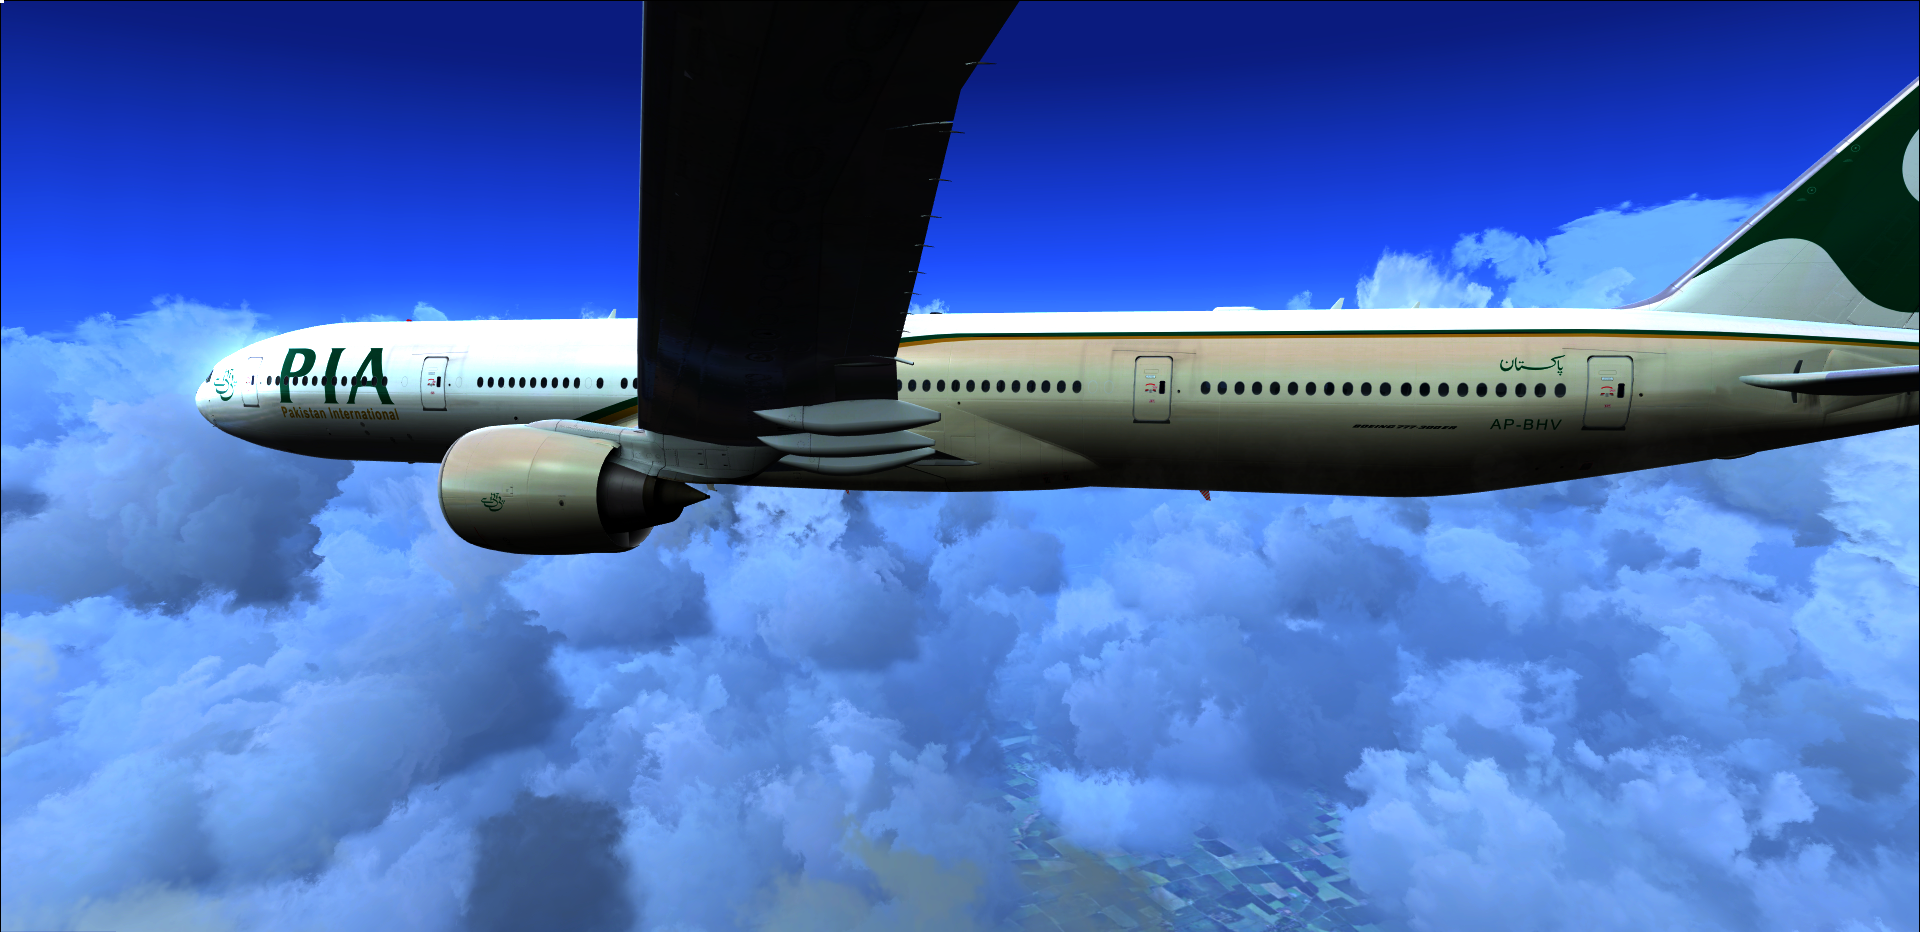 fsx%202014-08-06%2014-18-48-63.png